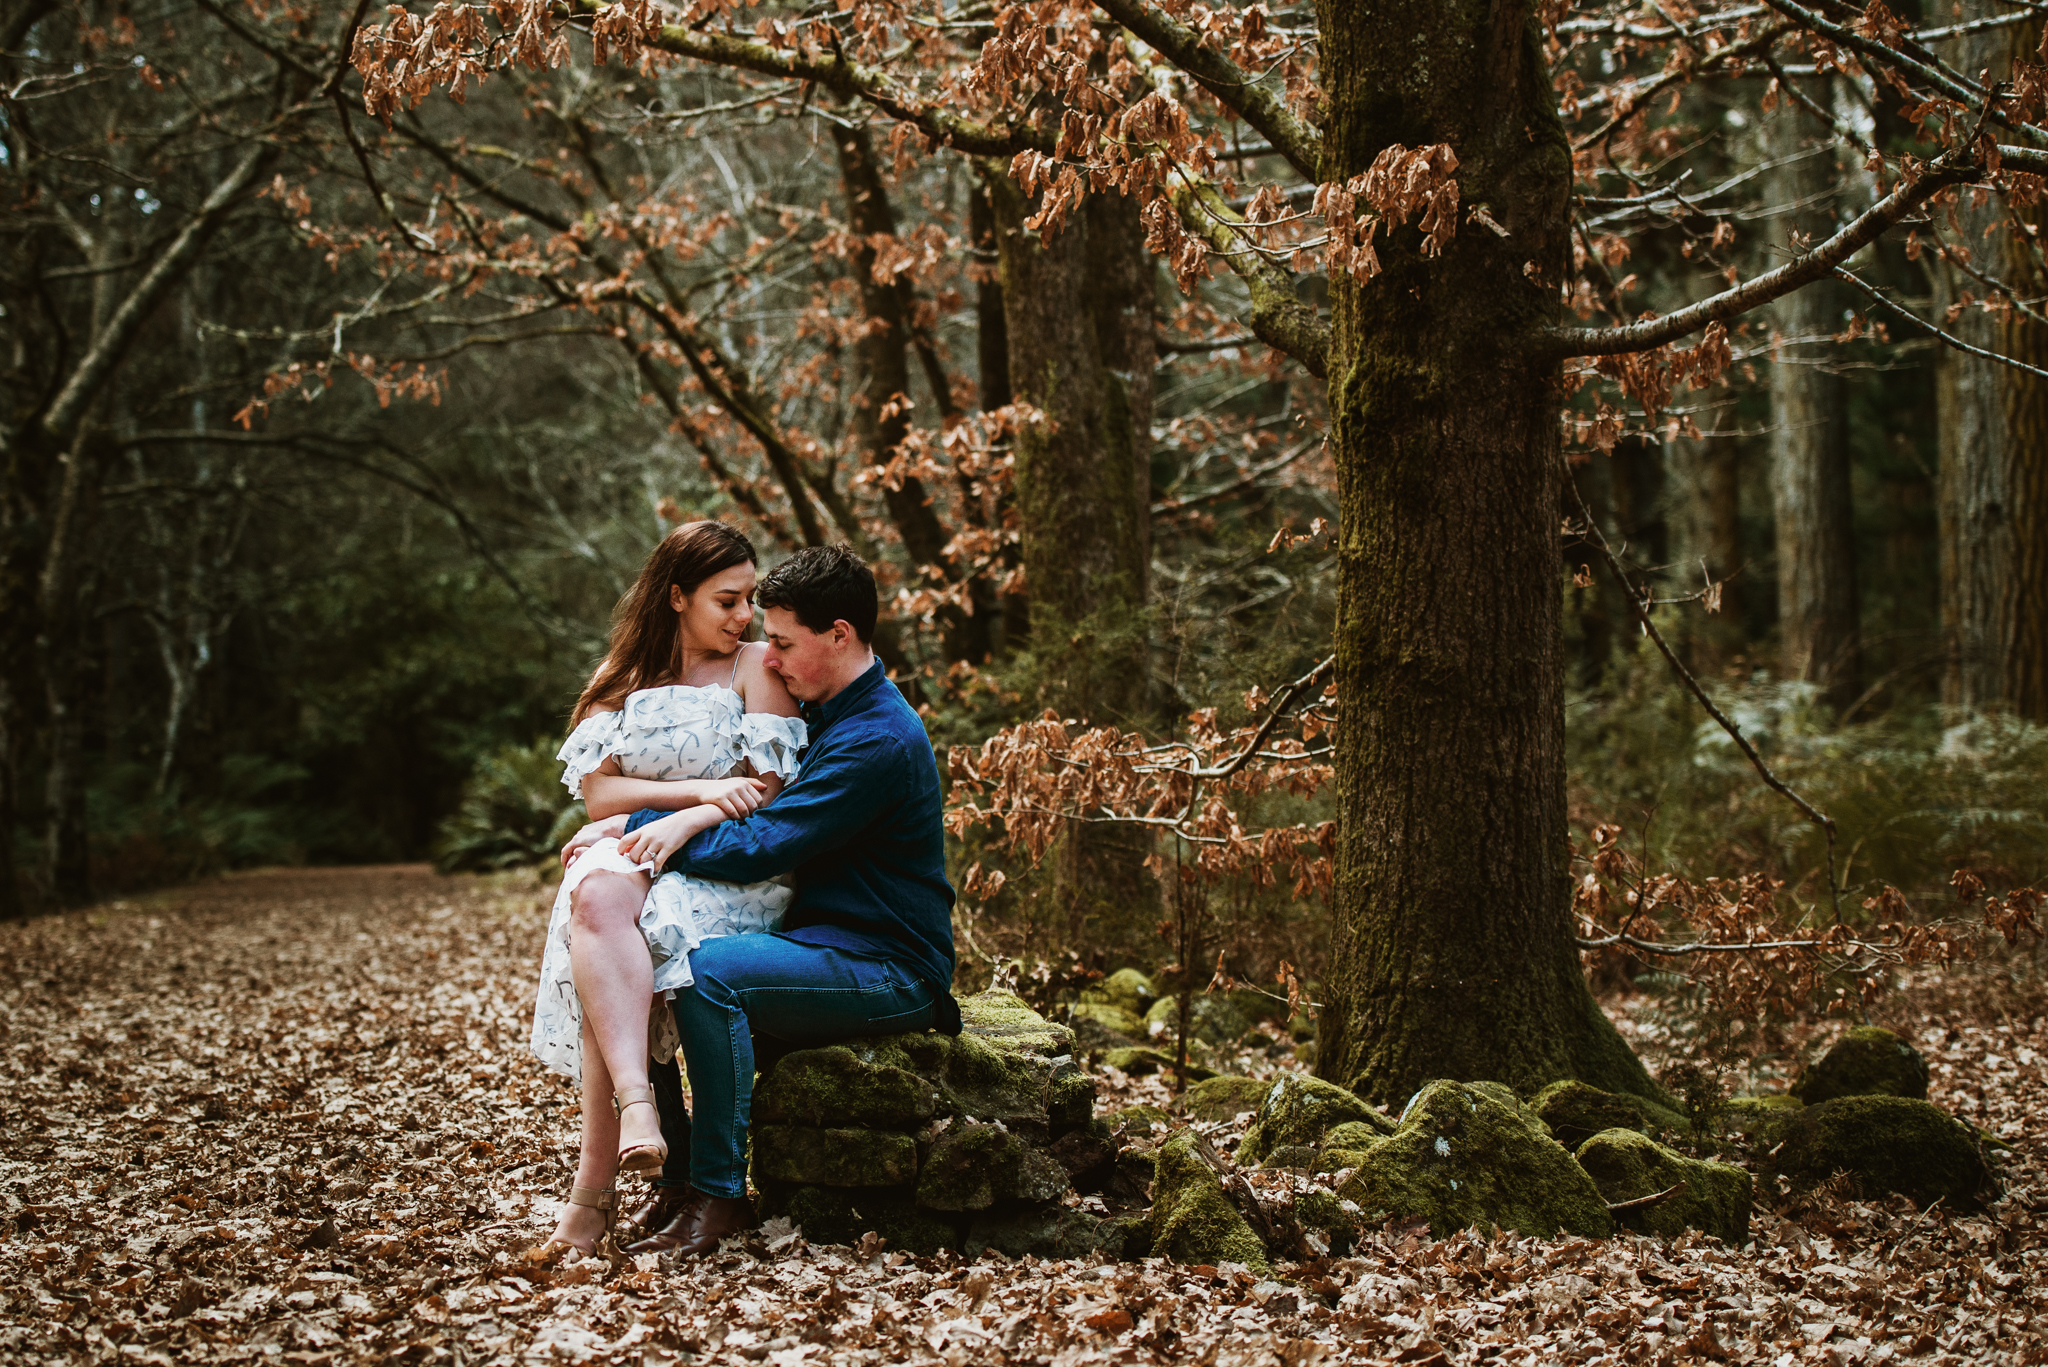 launceston couples photographer-18.jpg